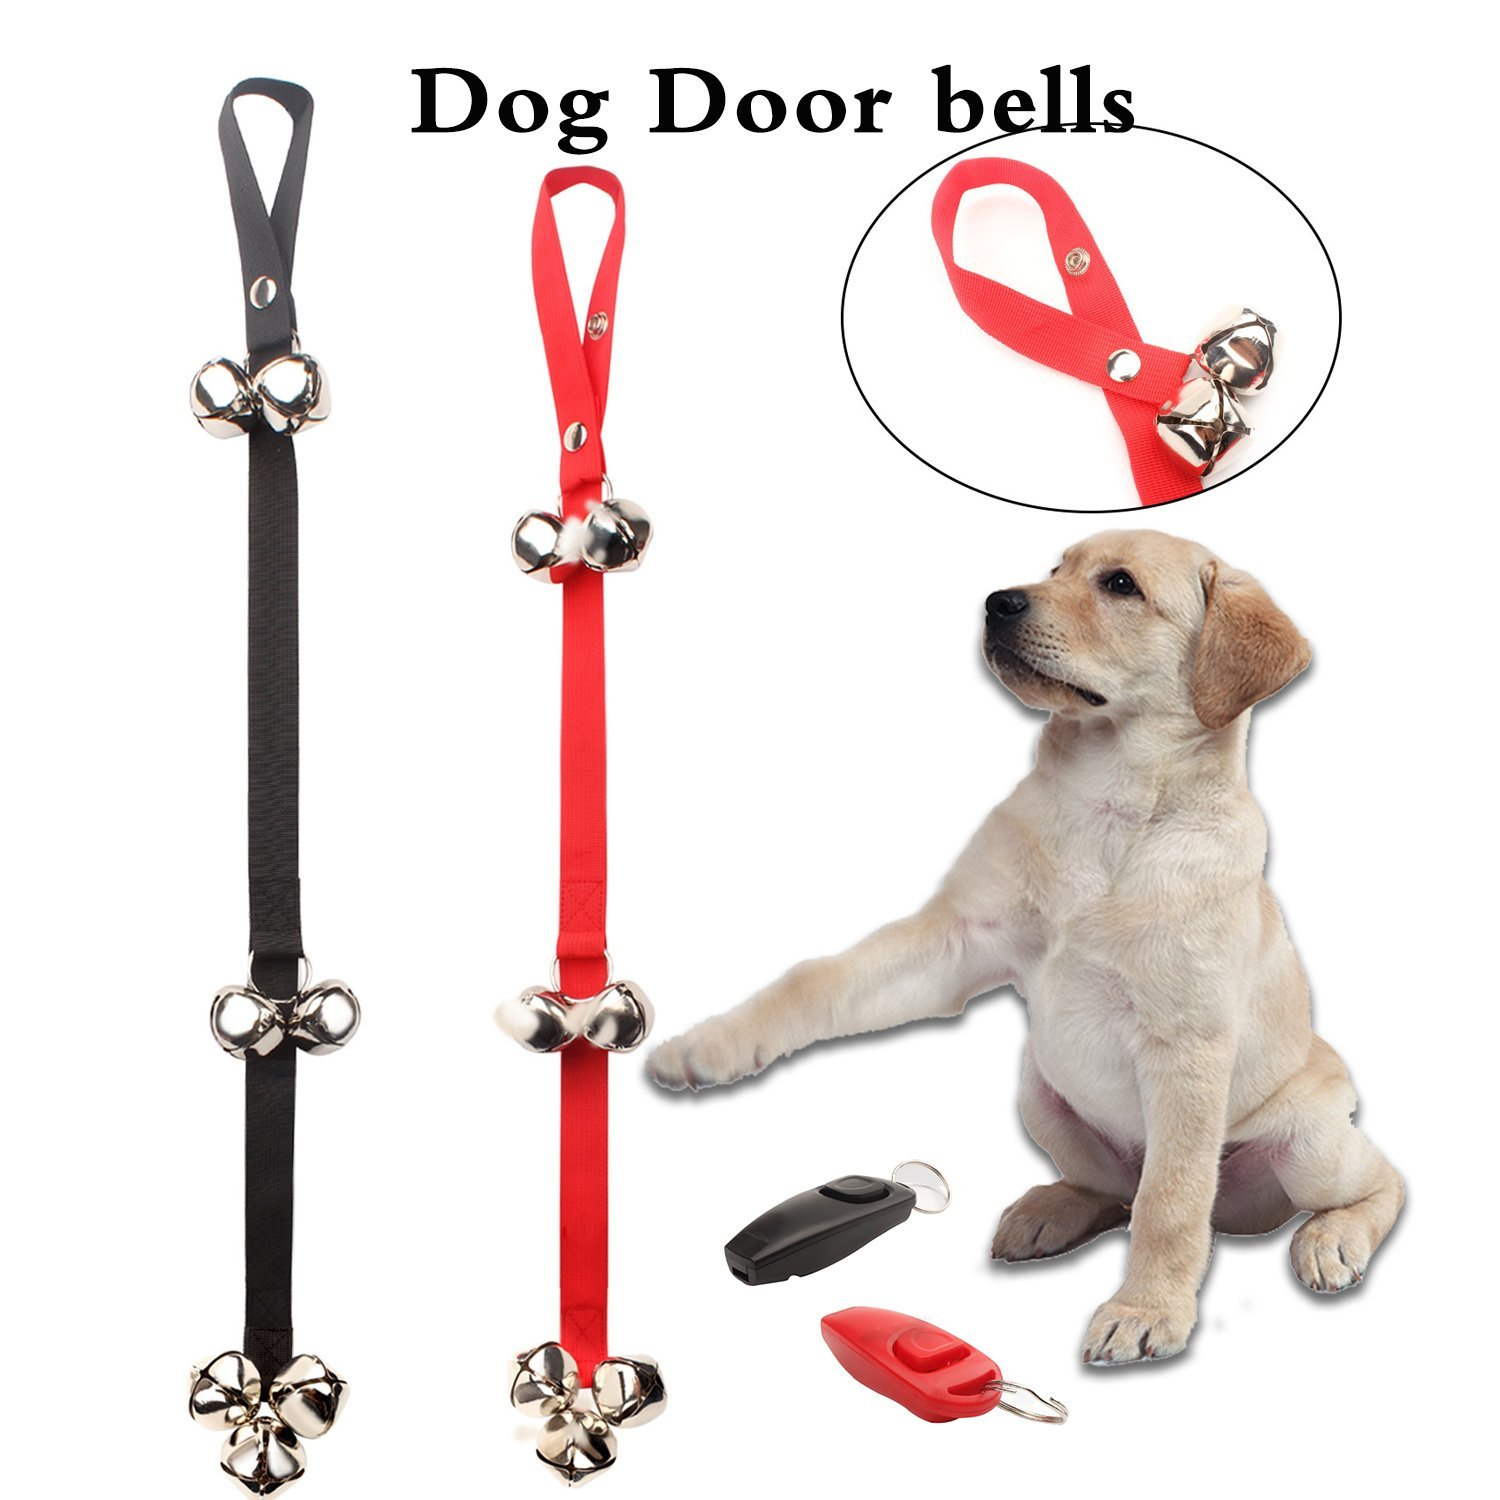 2 Pcs Pet Doorbell Rope Dog Toy Housetraining And Communicate Alarm